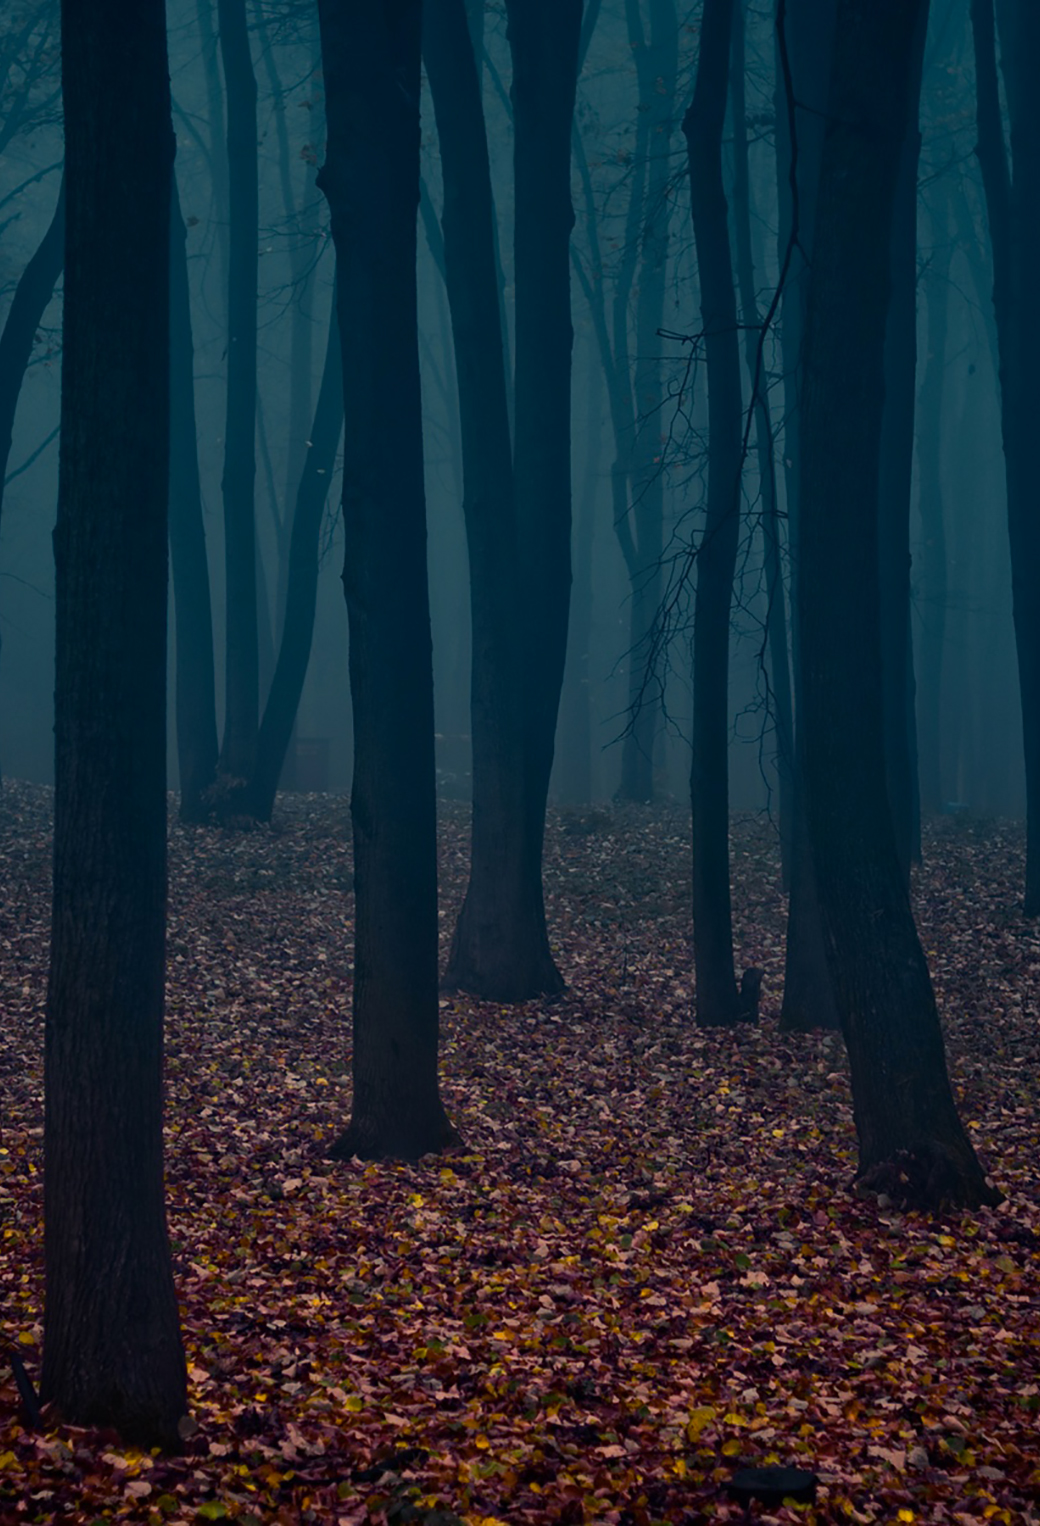 Pretty Girl Cartoon Wallpaper Gloomy Forest Wallpaper For Iphone X 8 7 6 Free